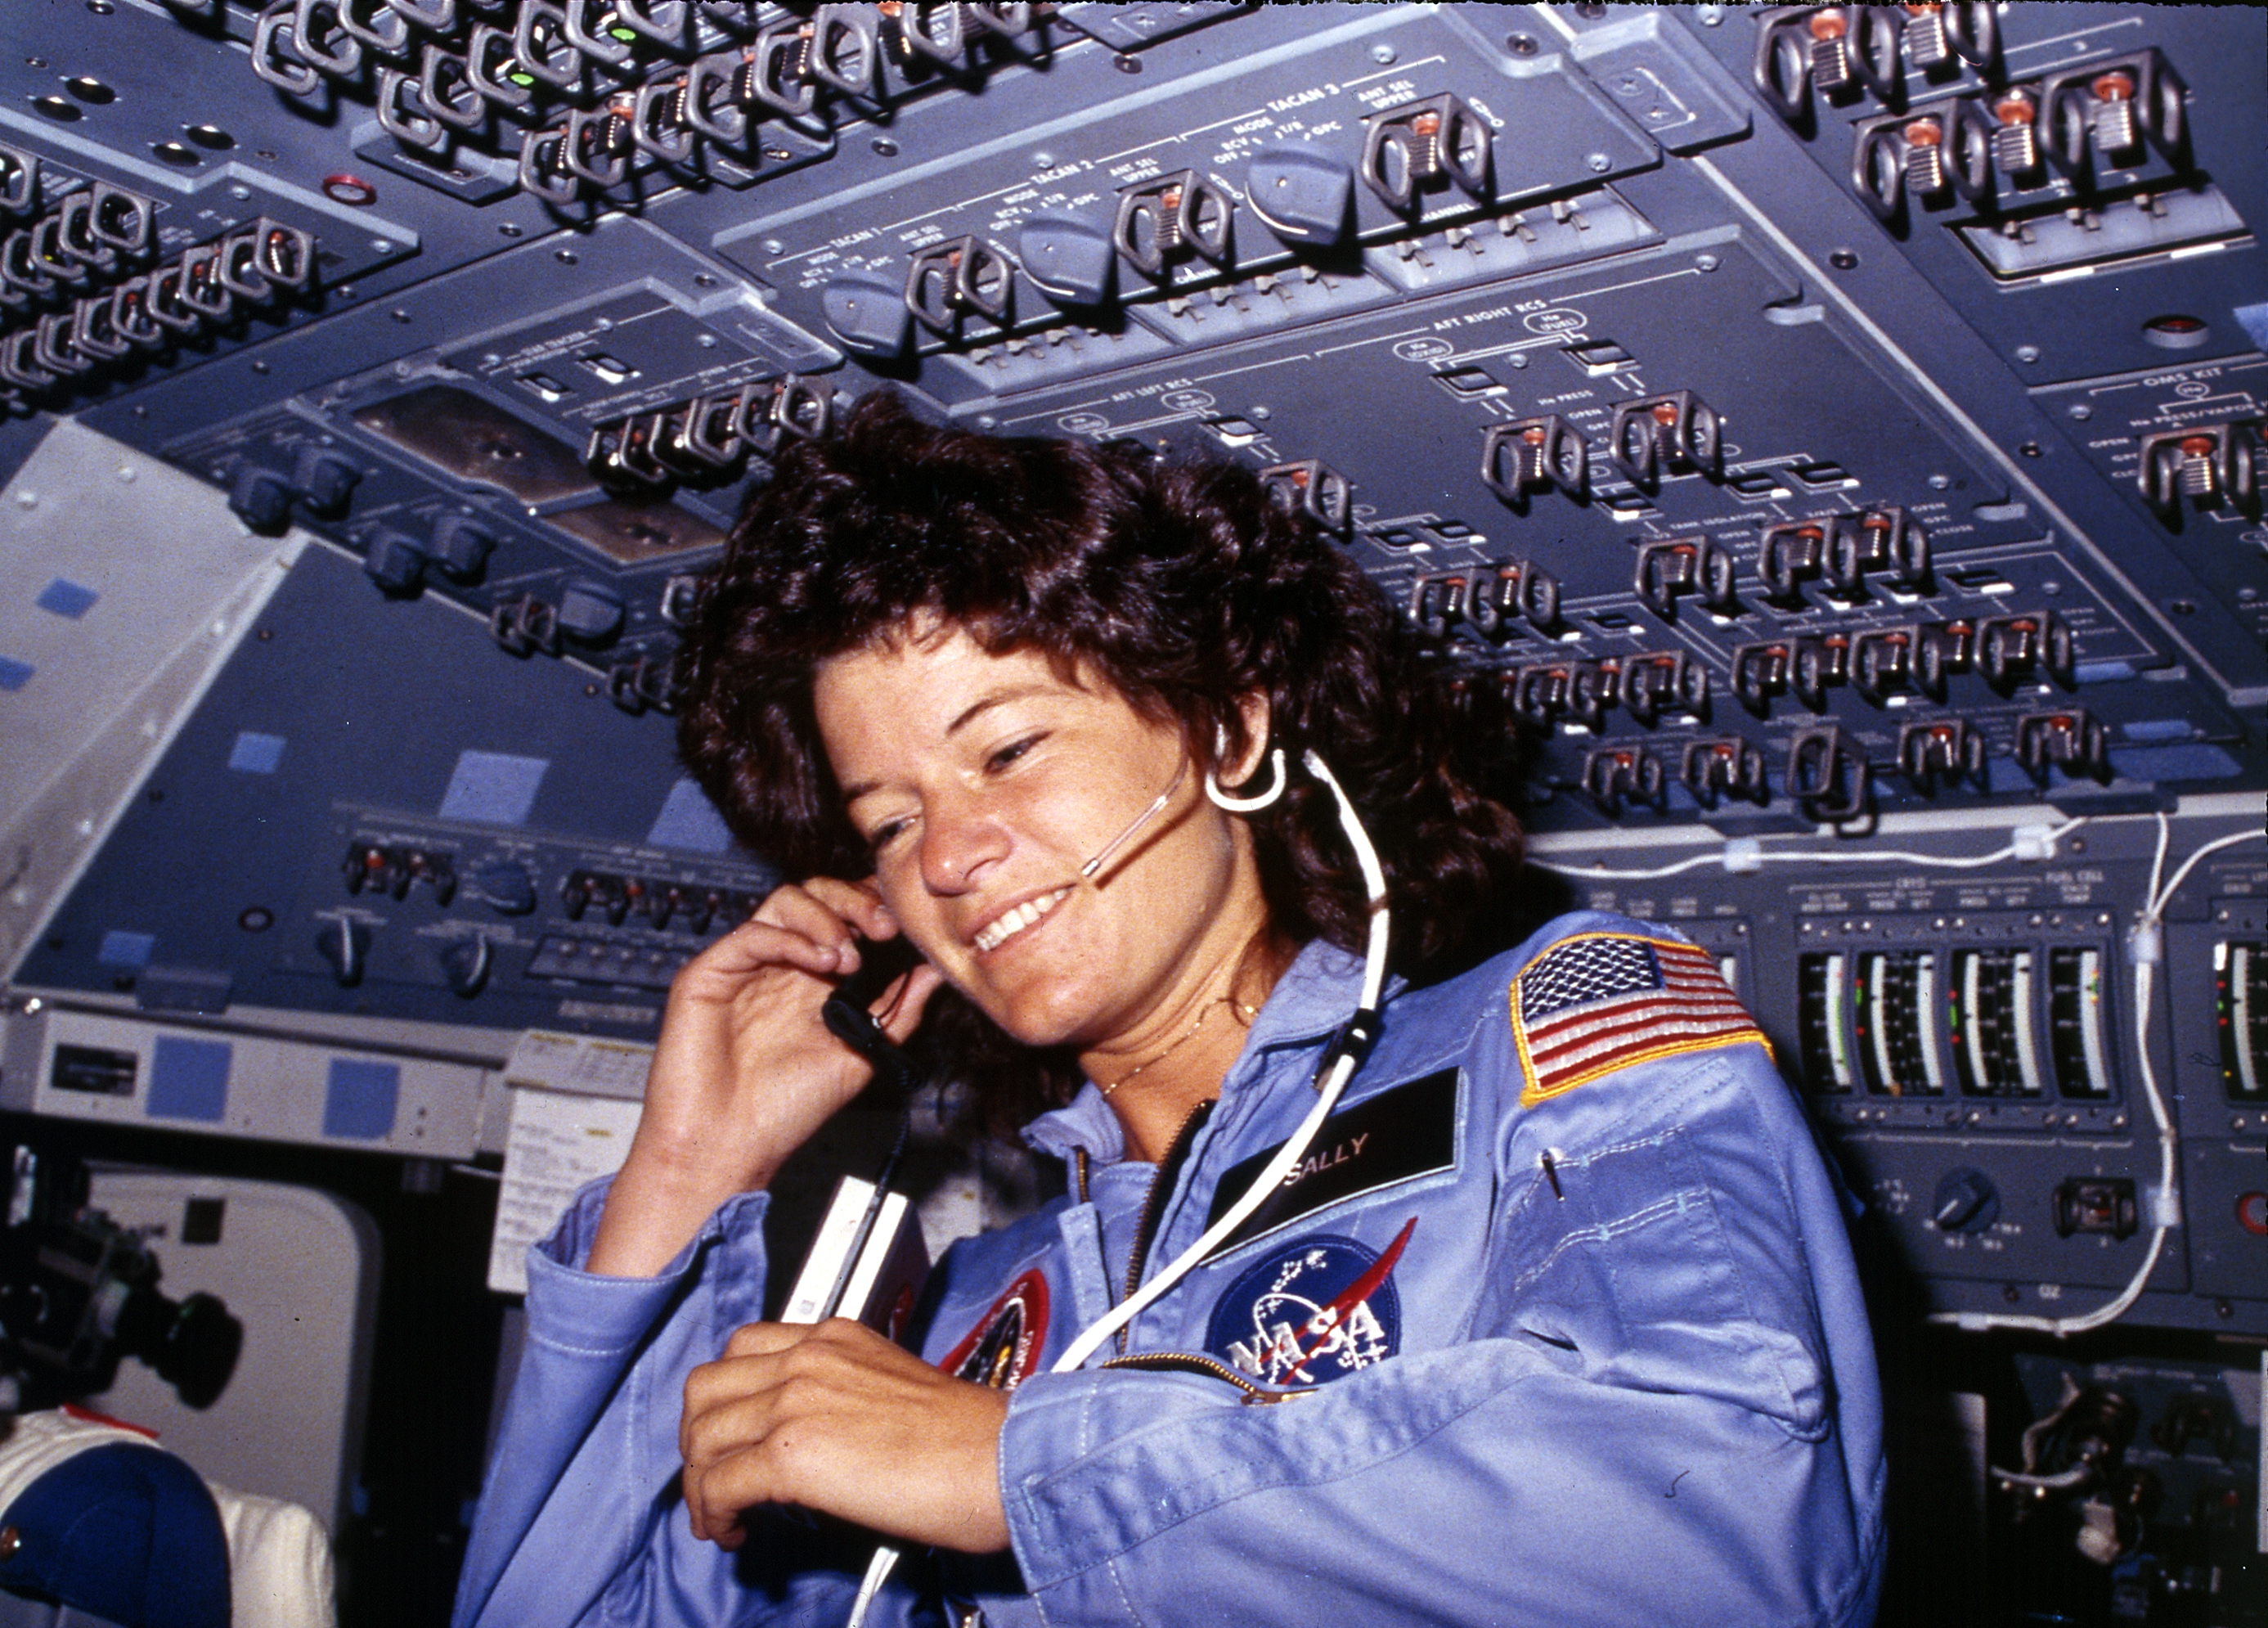 Sally_Ride,_America's_first_woman_astronaut_communitcates_with_ground_controllers_from_the_flight_deck_-_NARA_-_541940 -